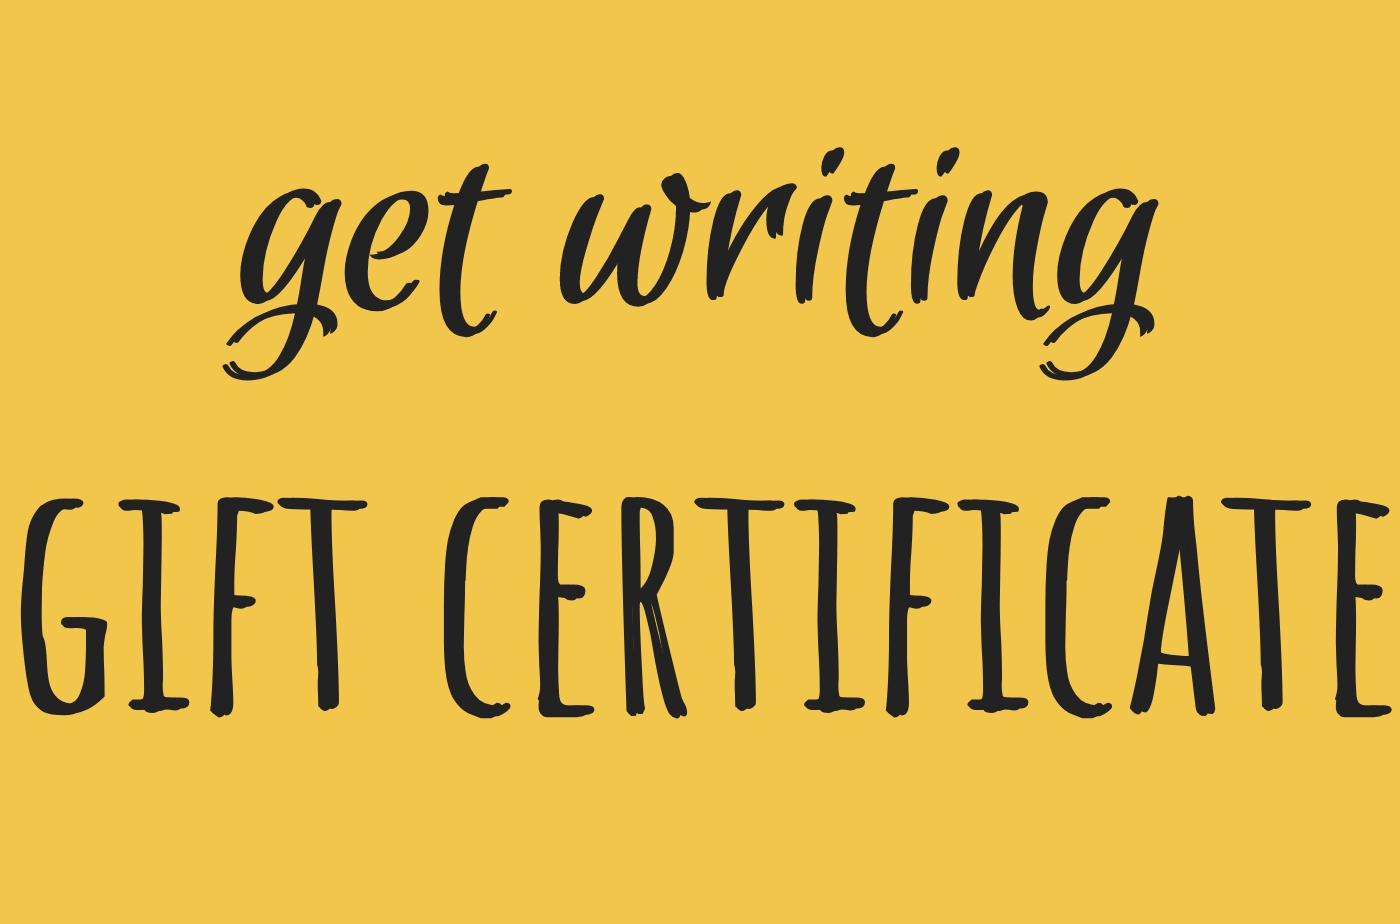 Catapult online classes: Catapult Classes, Get Writing Gift Certificate, Open-Genre, Independent Study